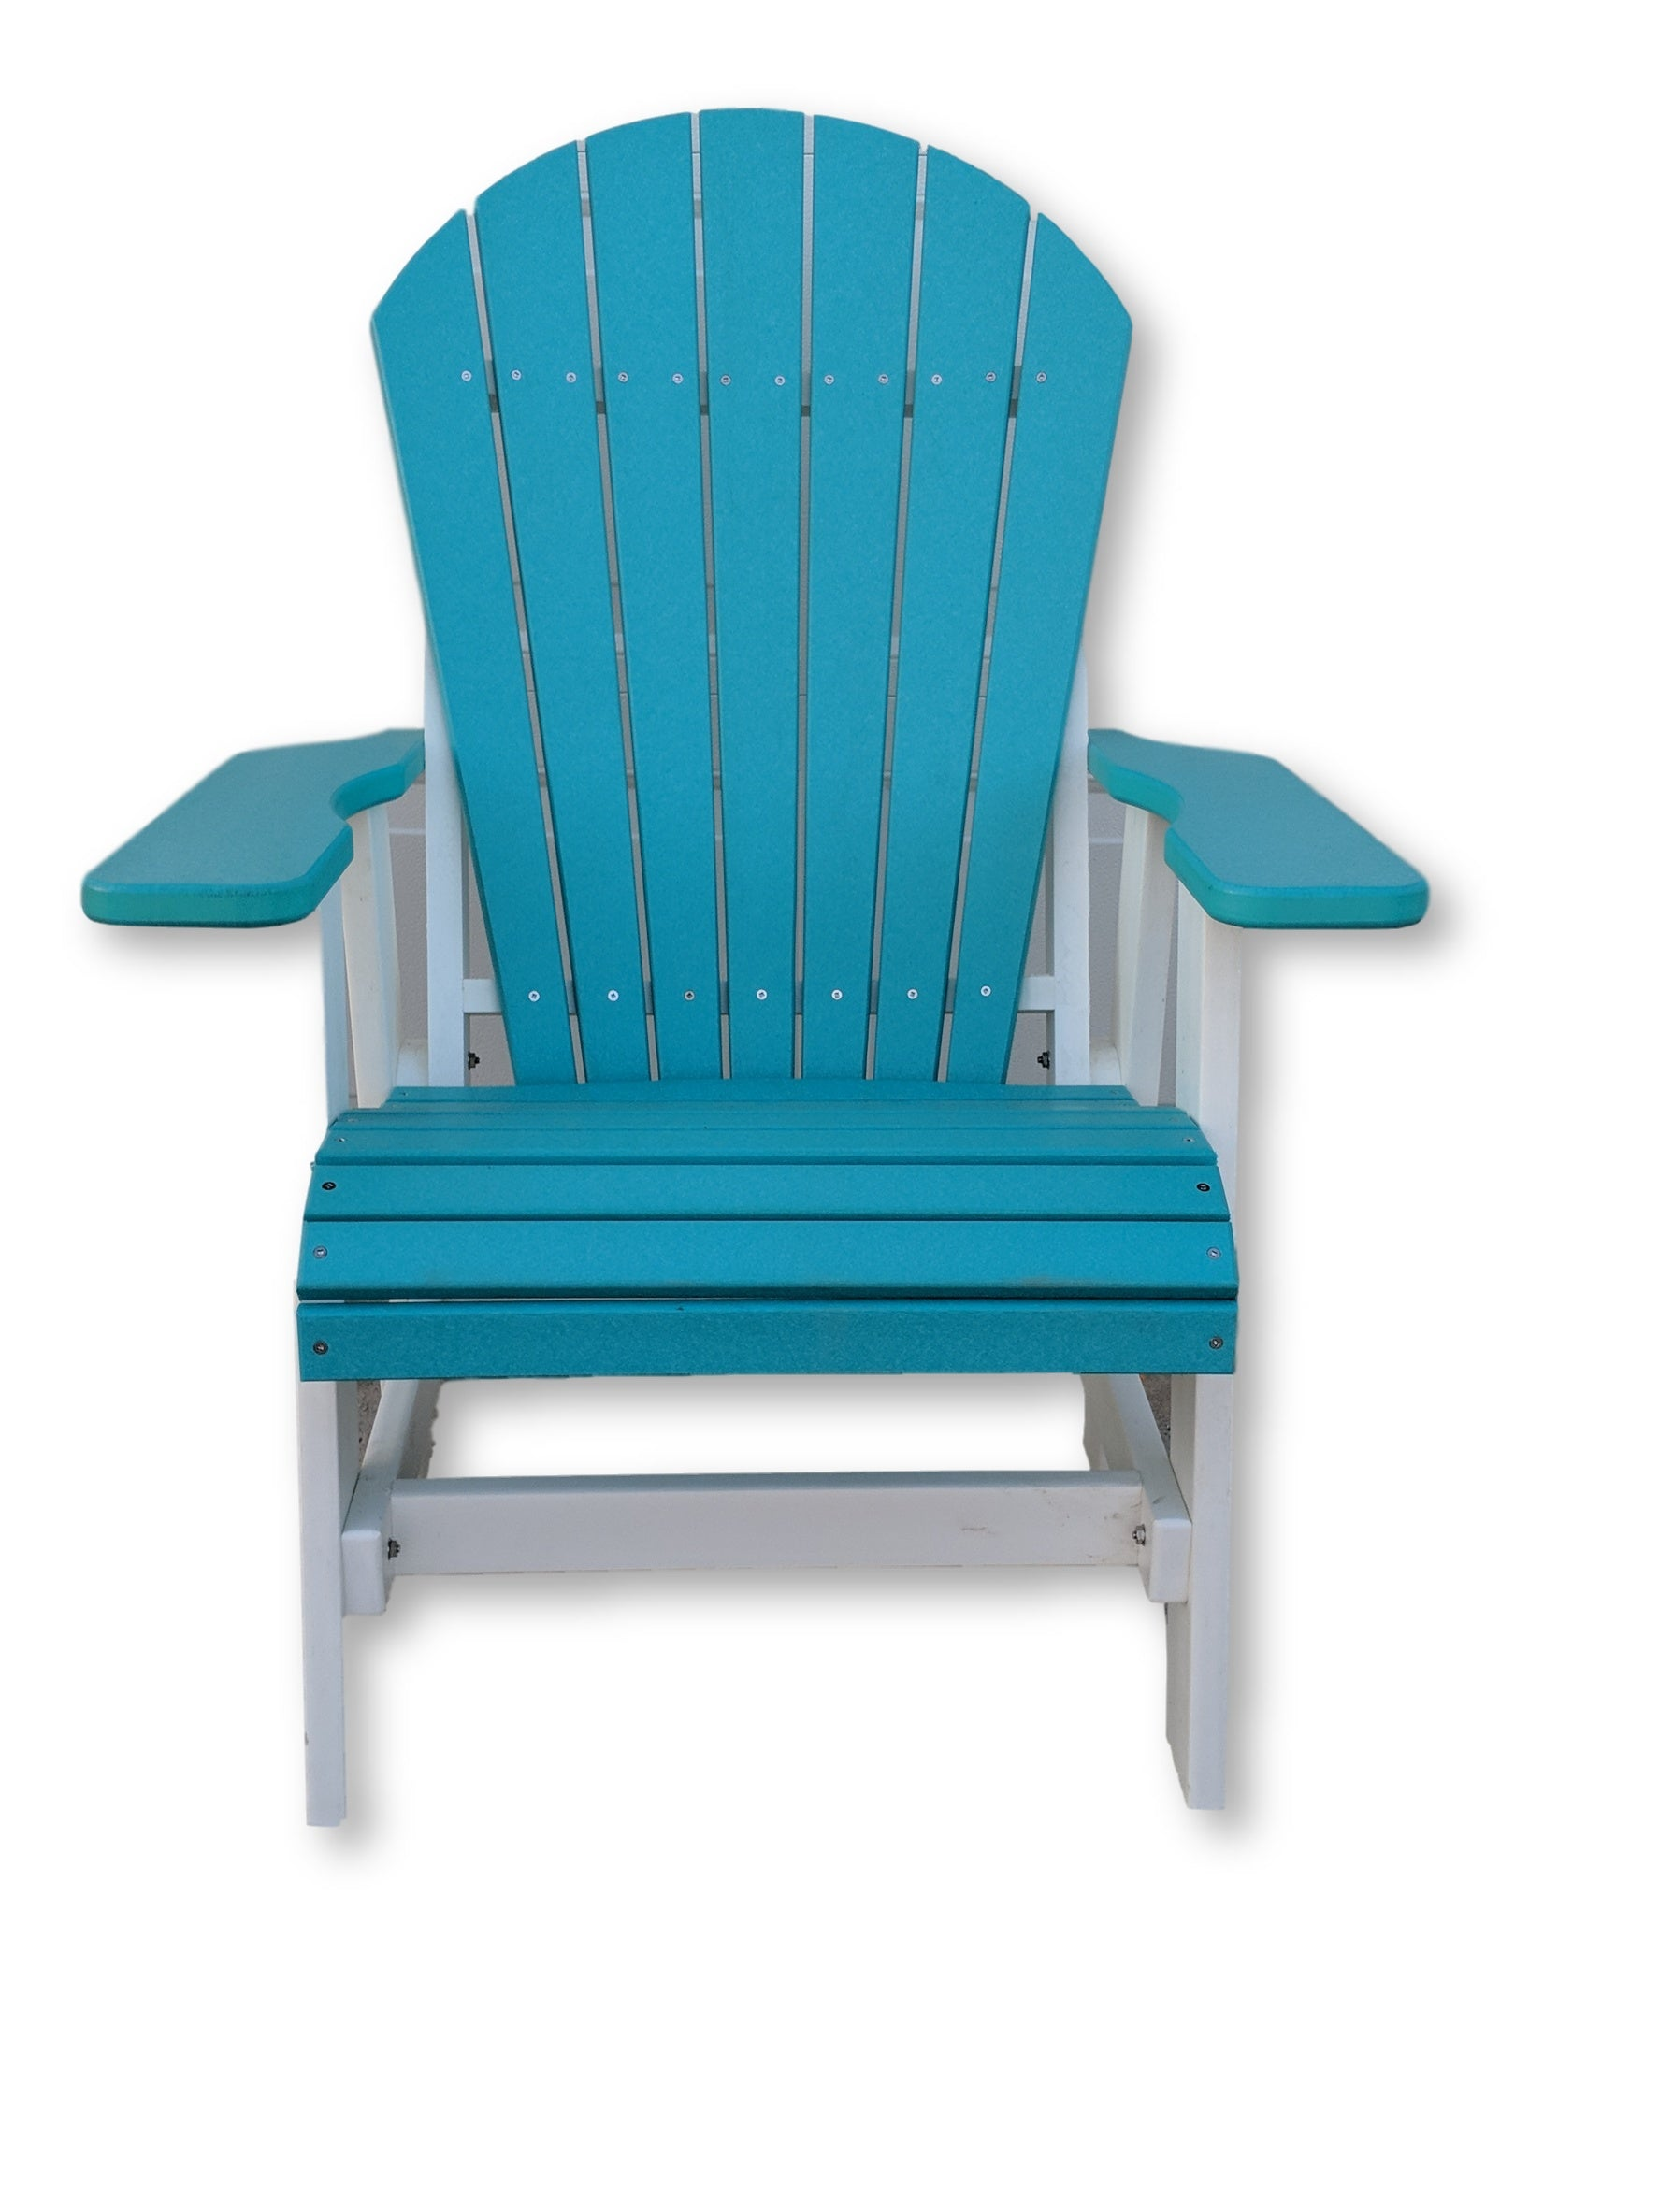 Aruba Blue and White Folding Adirondack Chair(No Cup Holders)